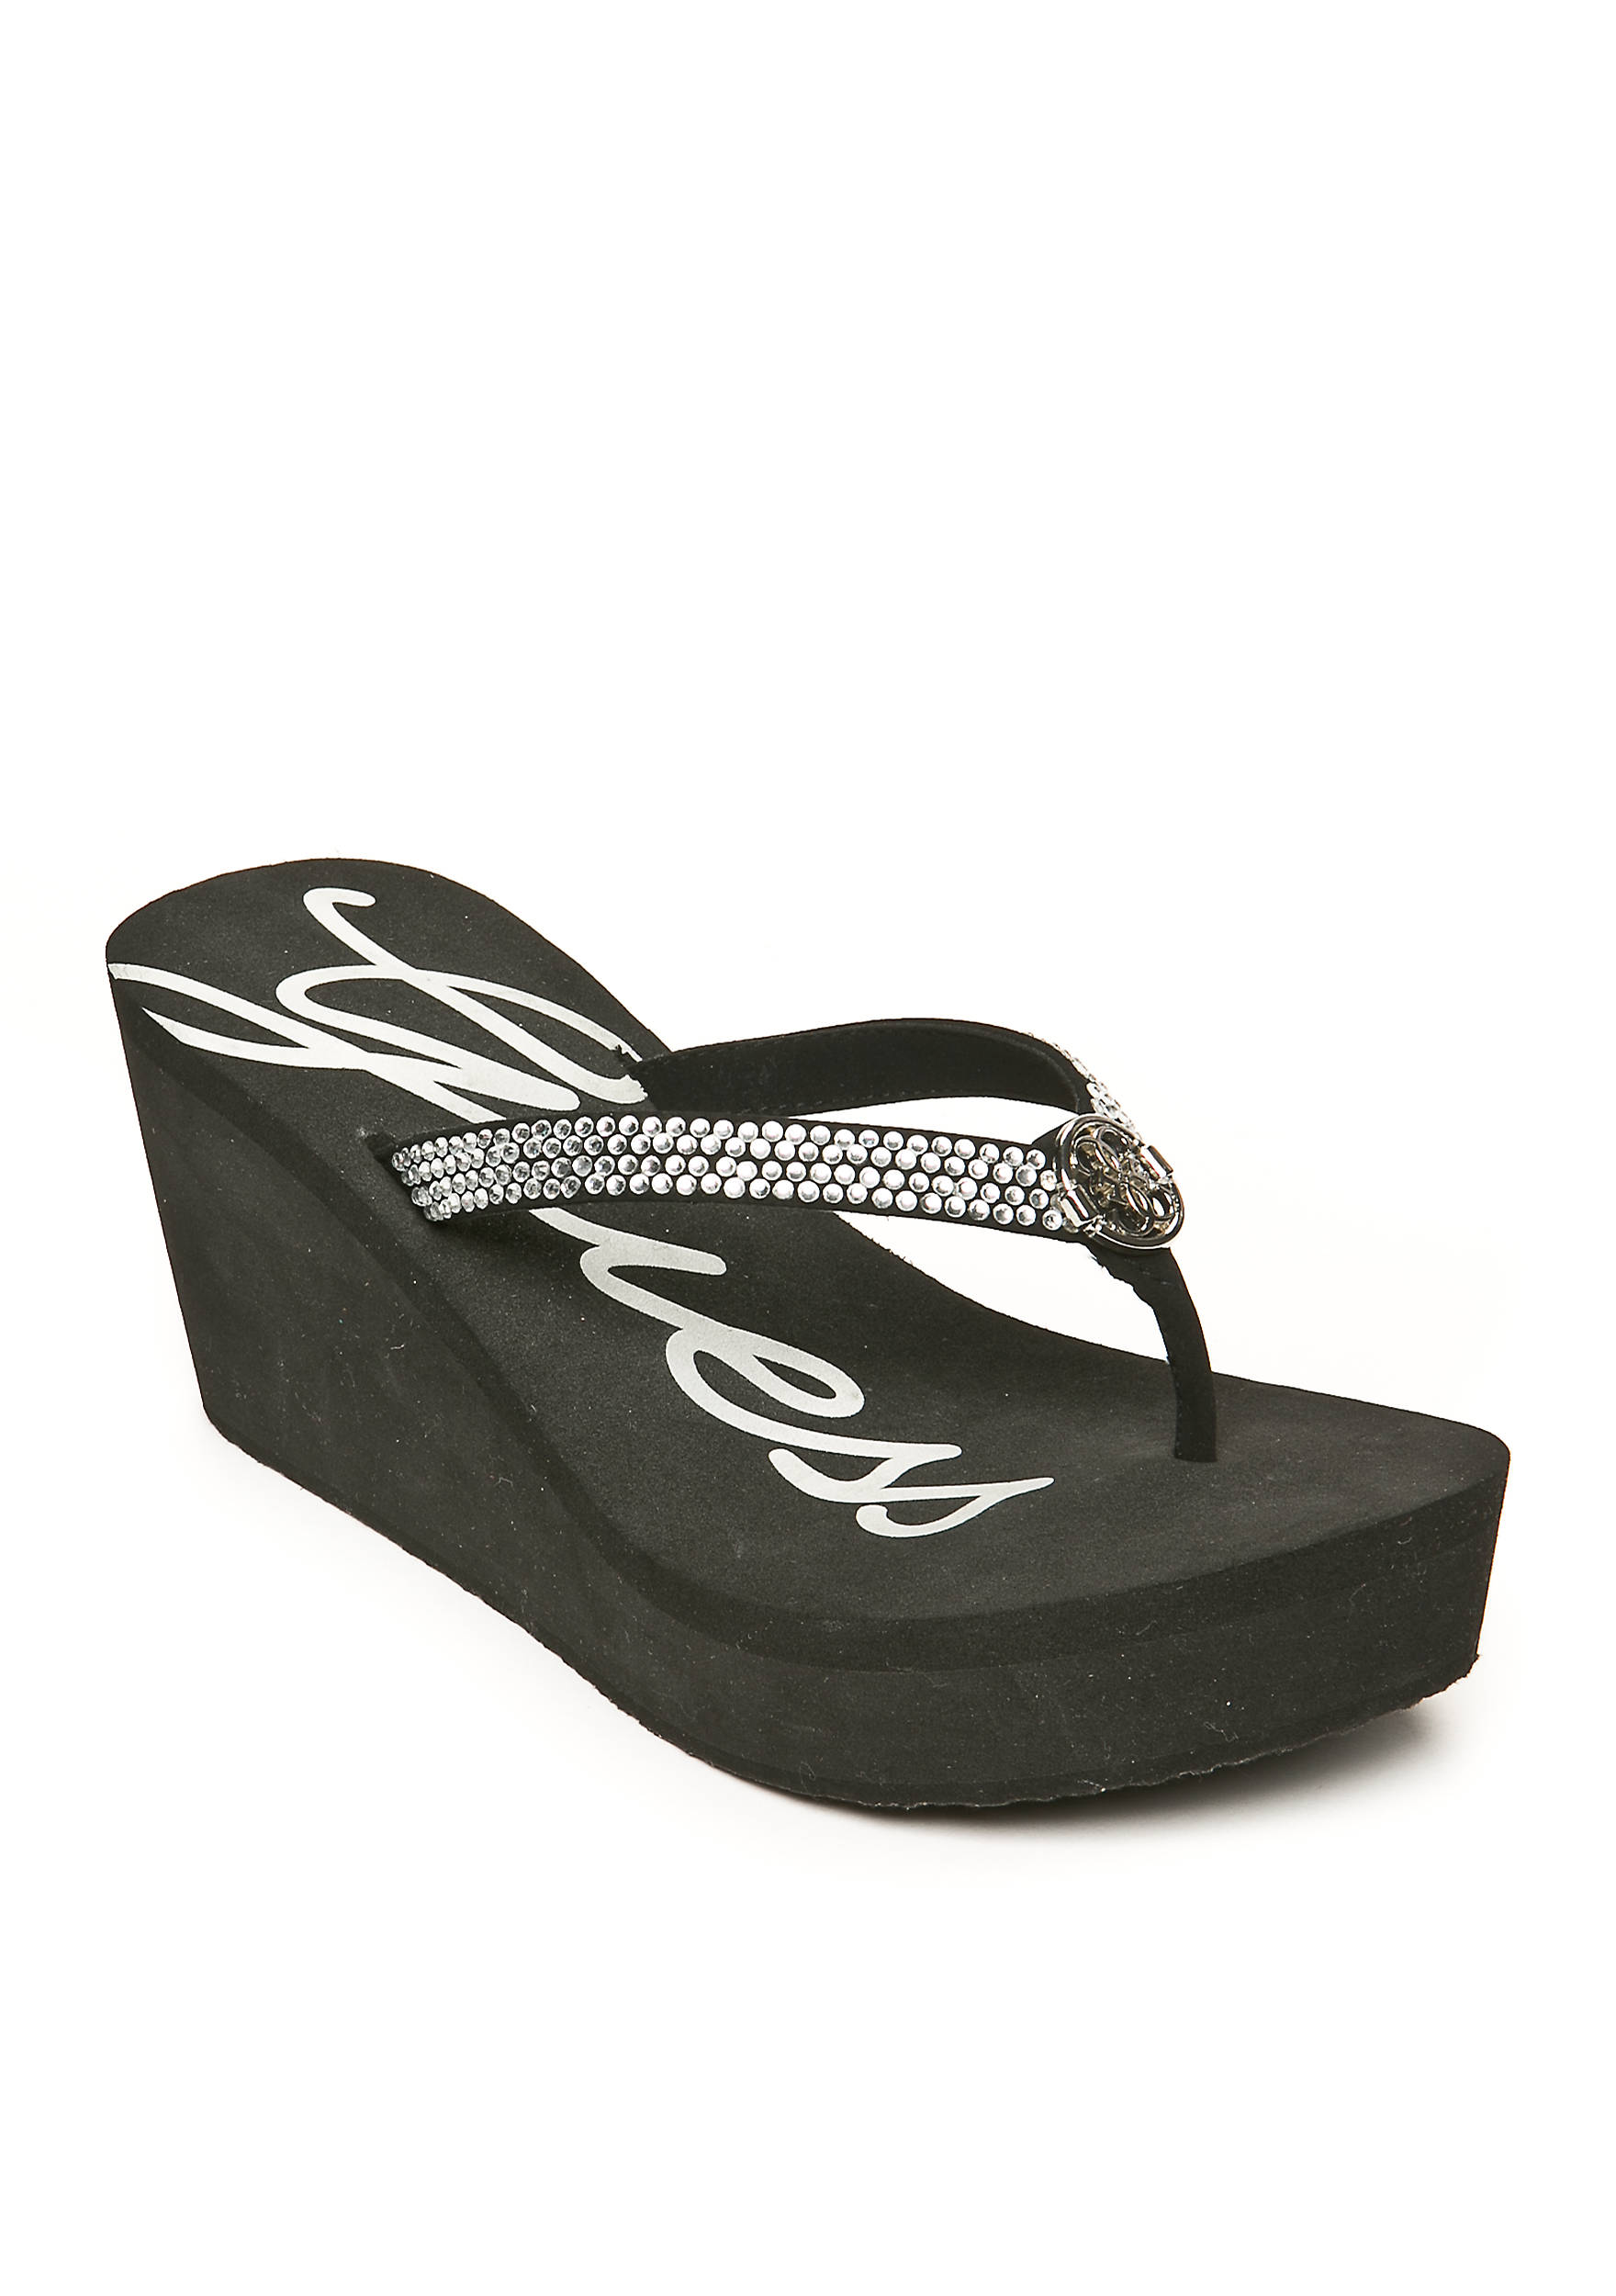 GUESS® Sechi Jewel Wedge Sandals. 2900436GWSECHI. Images